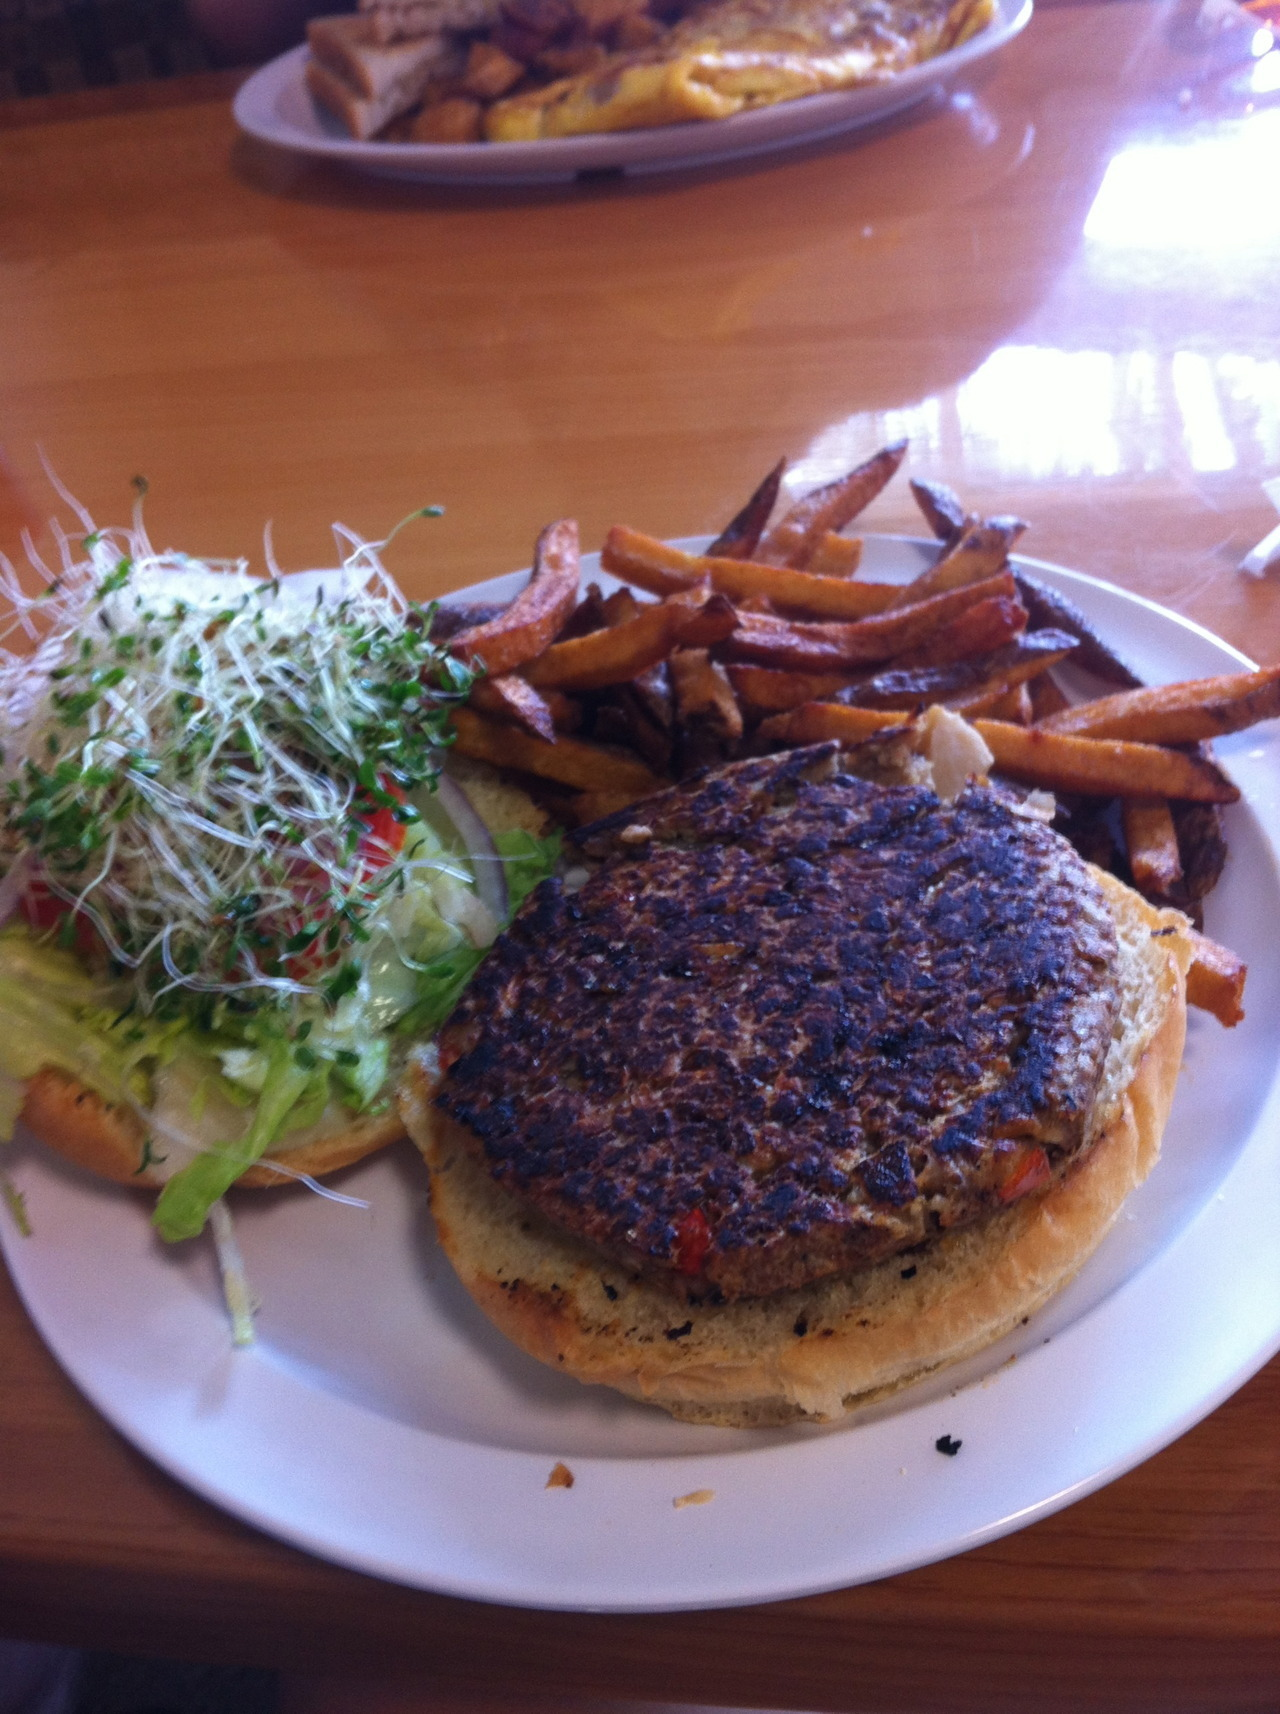 veggie burger with sprouts and fries at cocos in delray beach, fl